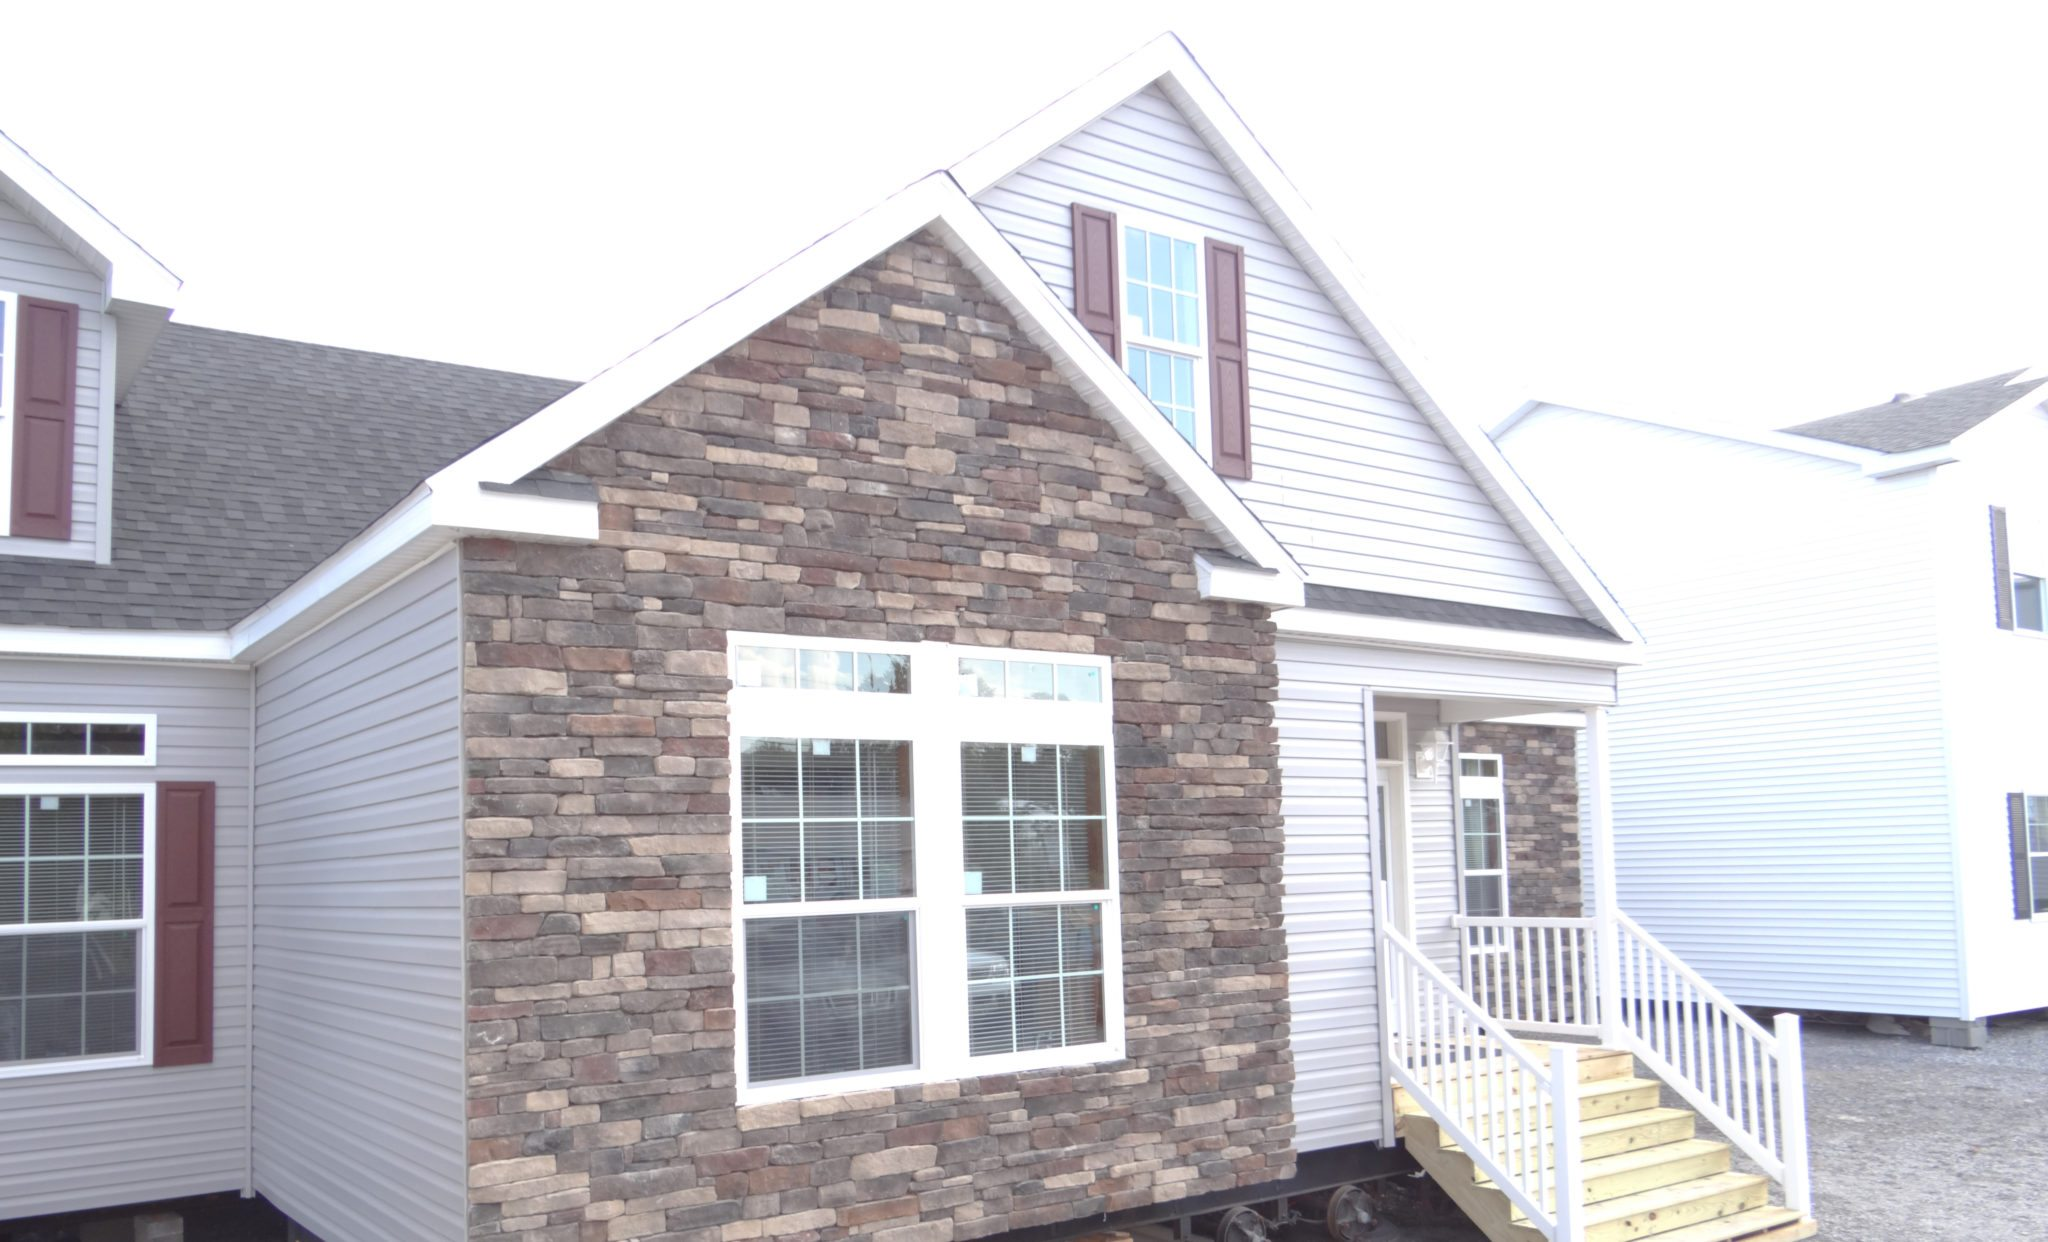 A stone or brick exterior on manufactured or modular homes Exterior stone veneer installation cost